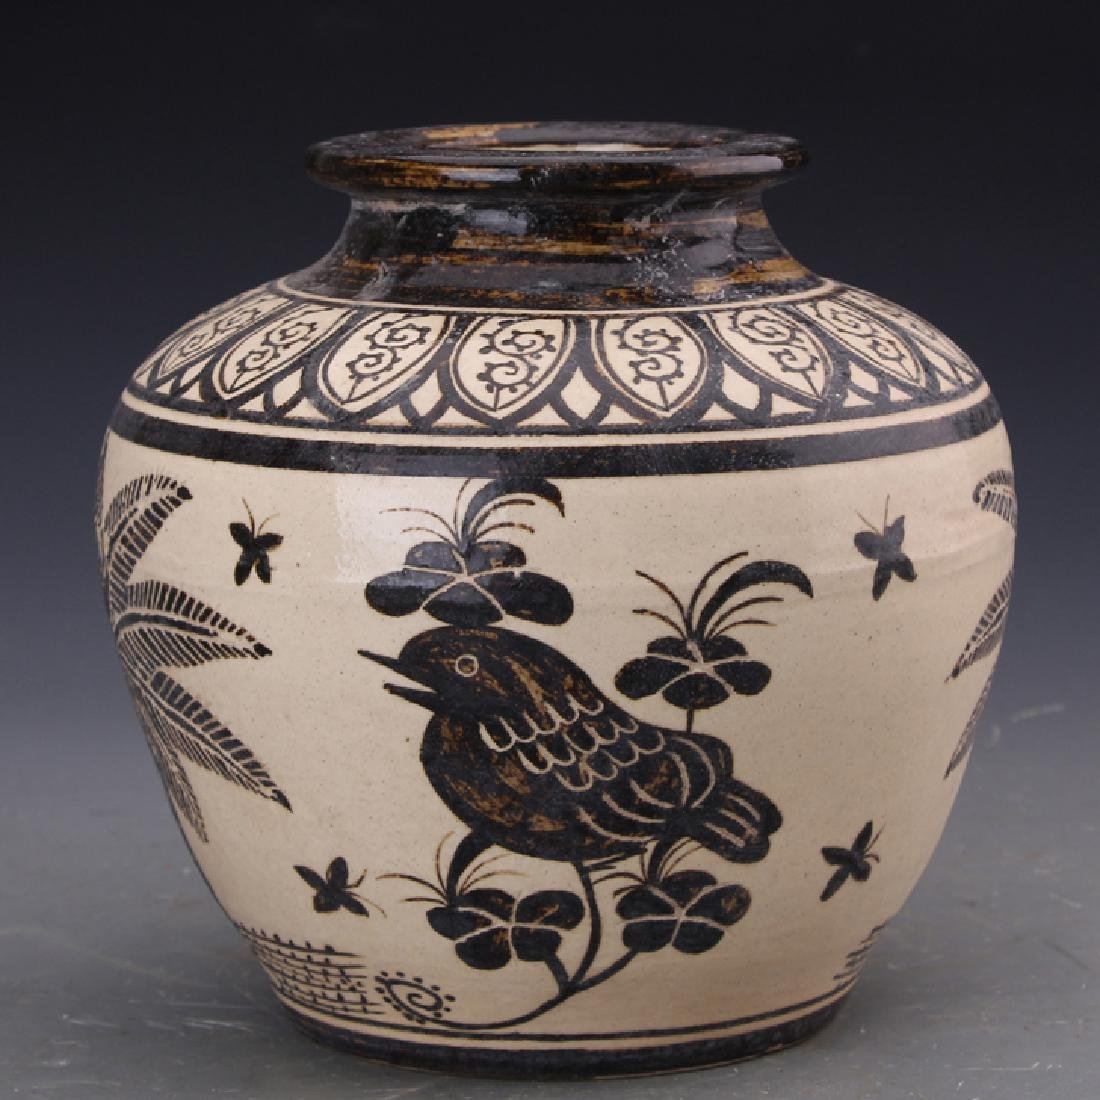 Chinese Ji Zhou Ware Pot